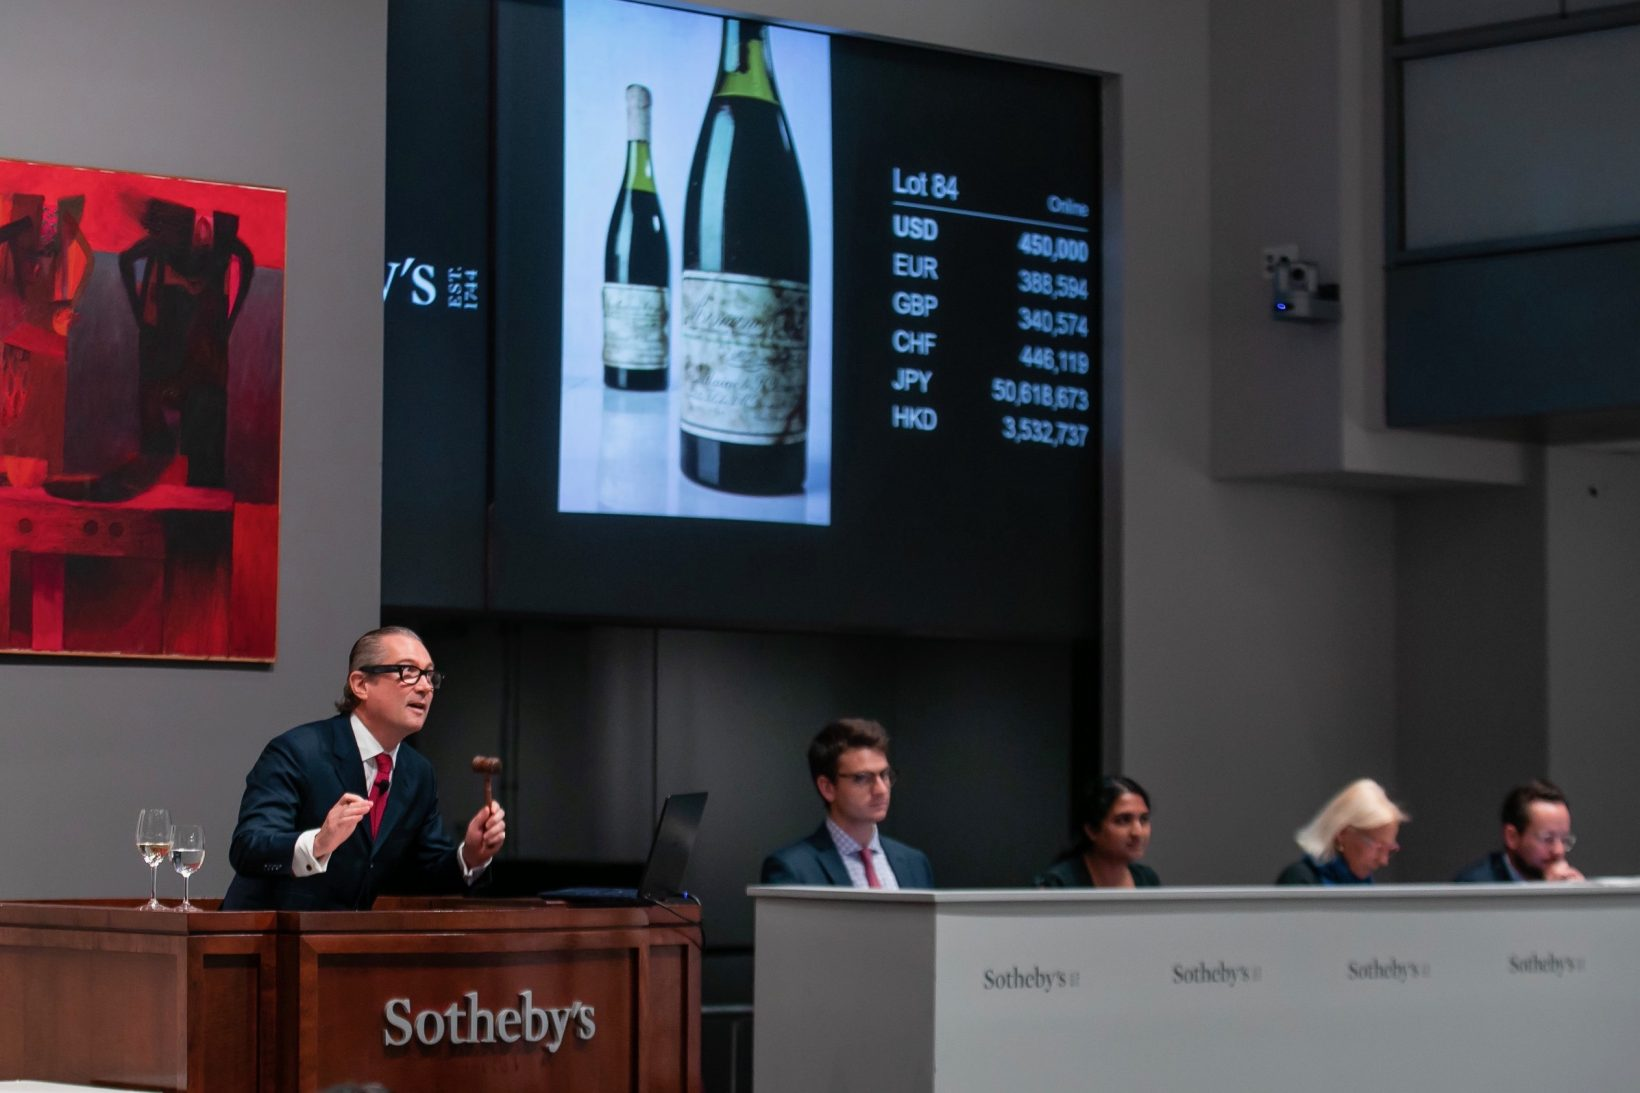 Collecting fine wines, an upward trend since the pandemic